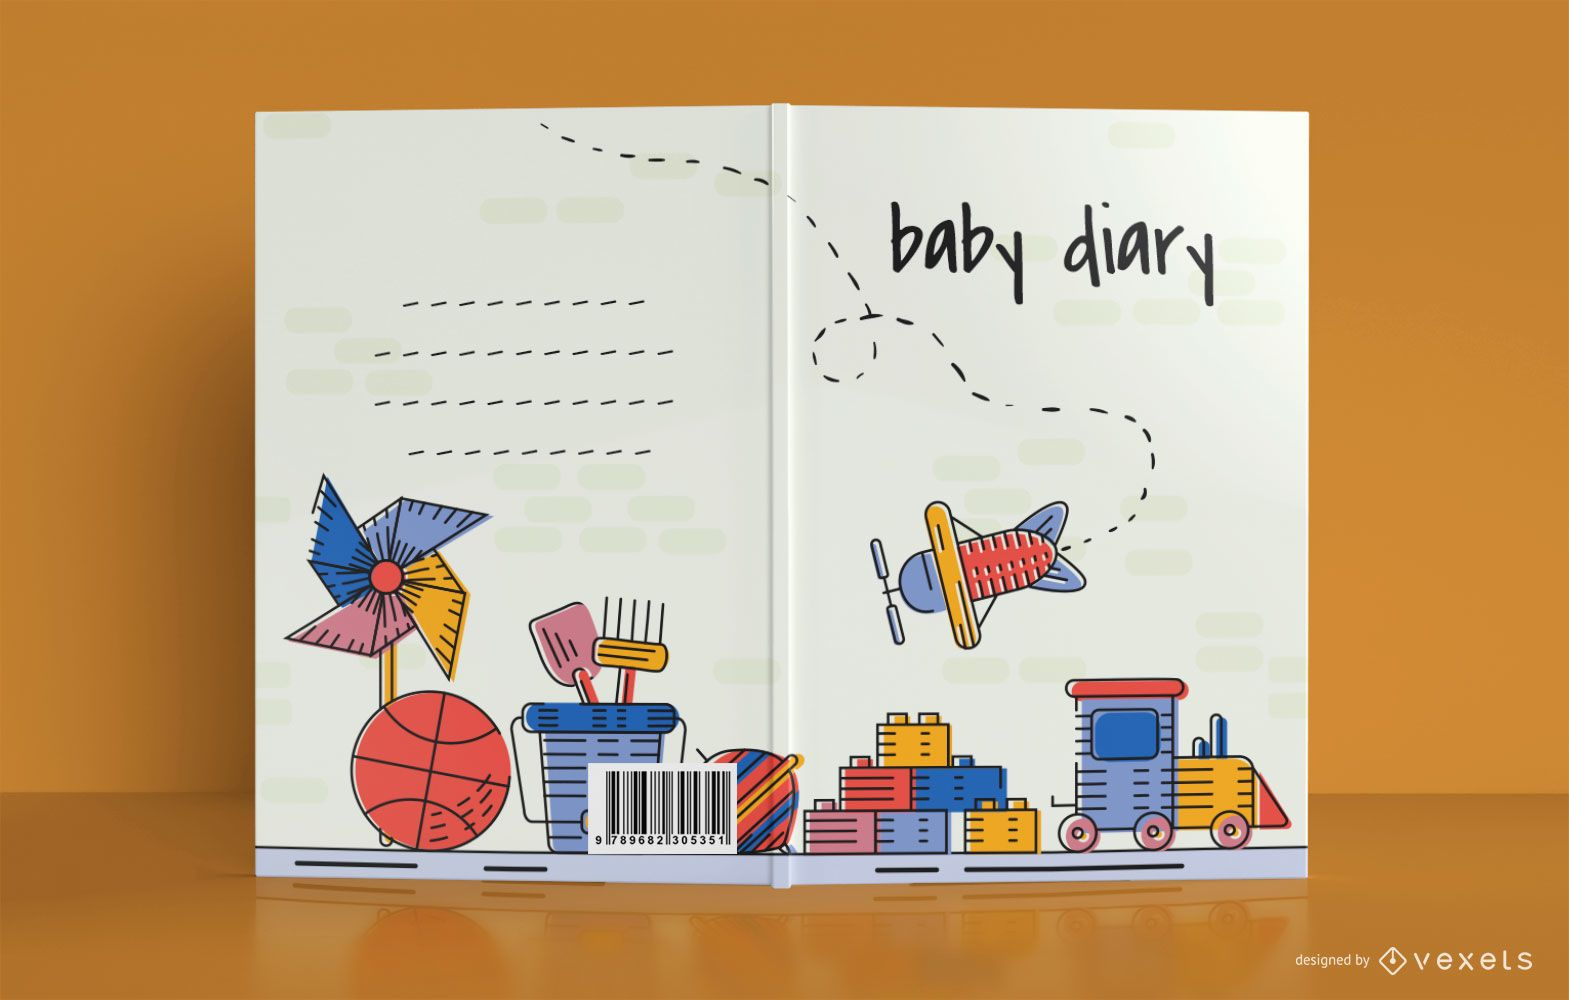 Toy Baby Diary Book Cover Design